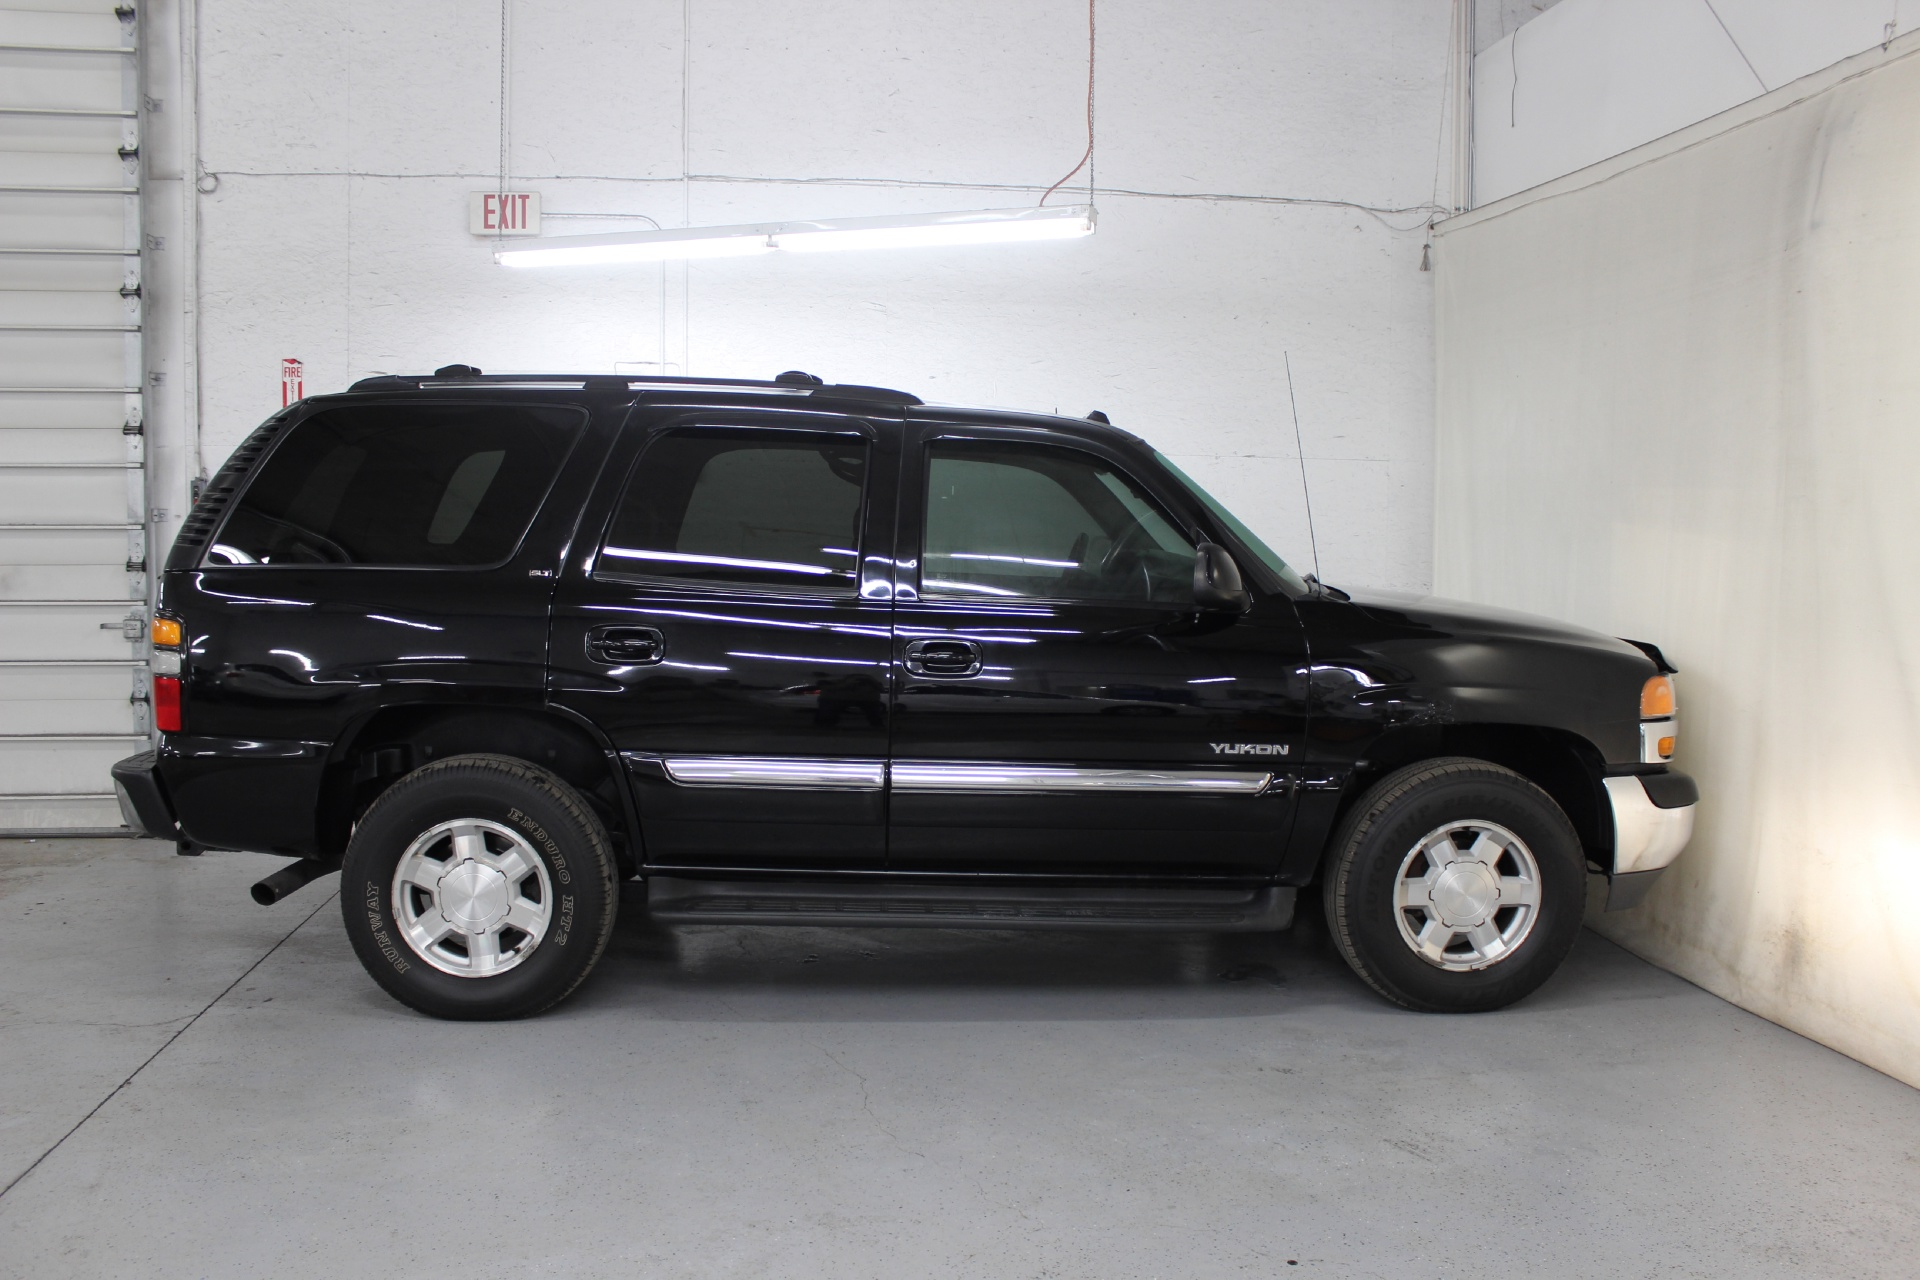 2004 GMC Yukon SLT - Biscayne Auto Sales | Pre-owned Dealership | Ontario, NY